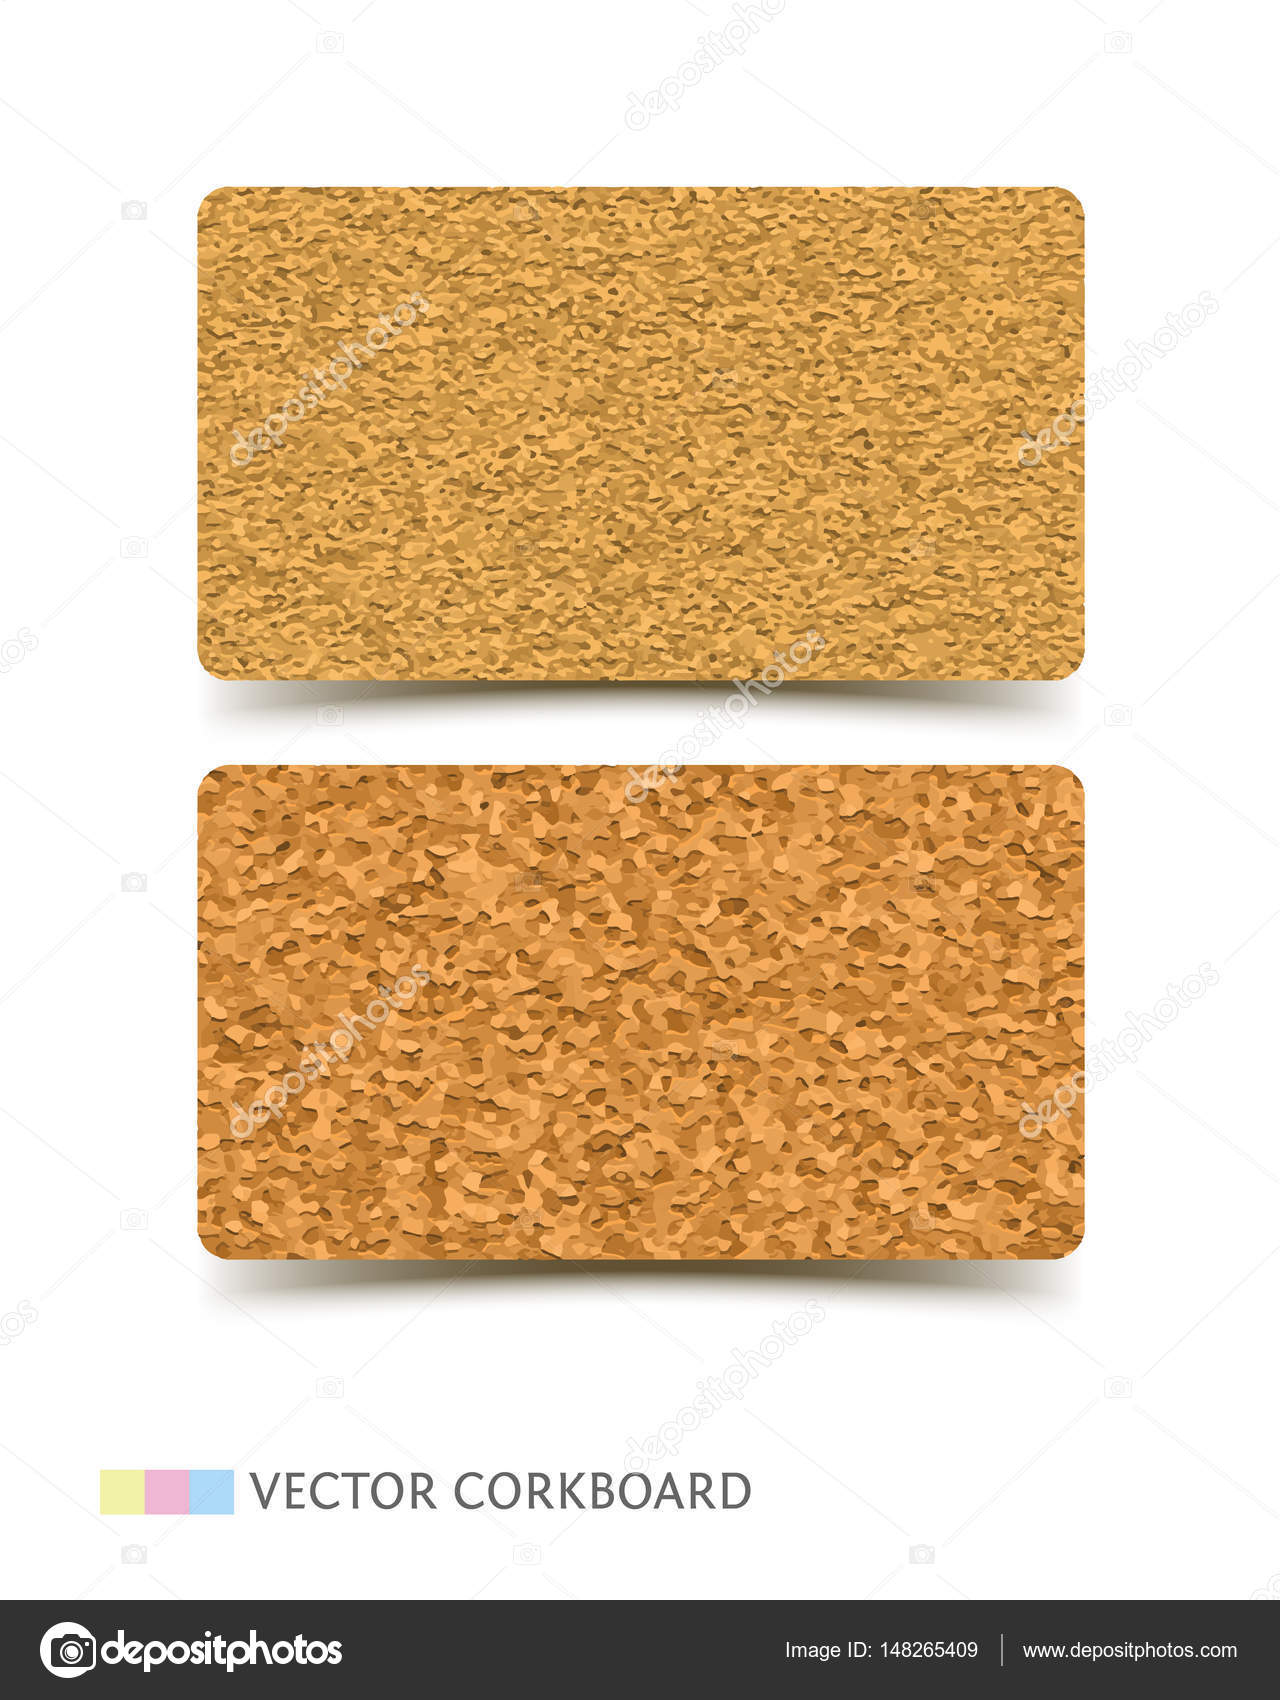 Cork Conseil Texture Porte Cartes Vector Illustration Realiste Modele Pour Lentreprise Conception De Leducation Vecteur Par VoinSveta